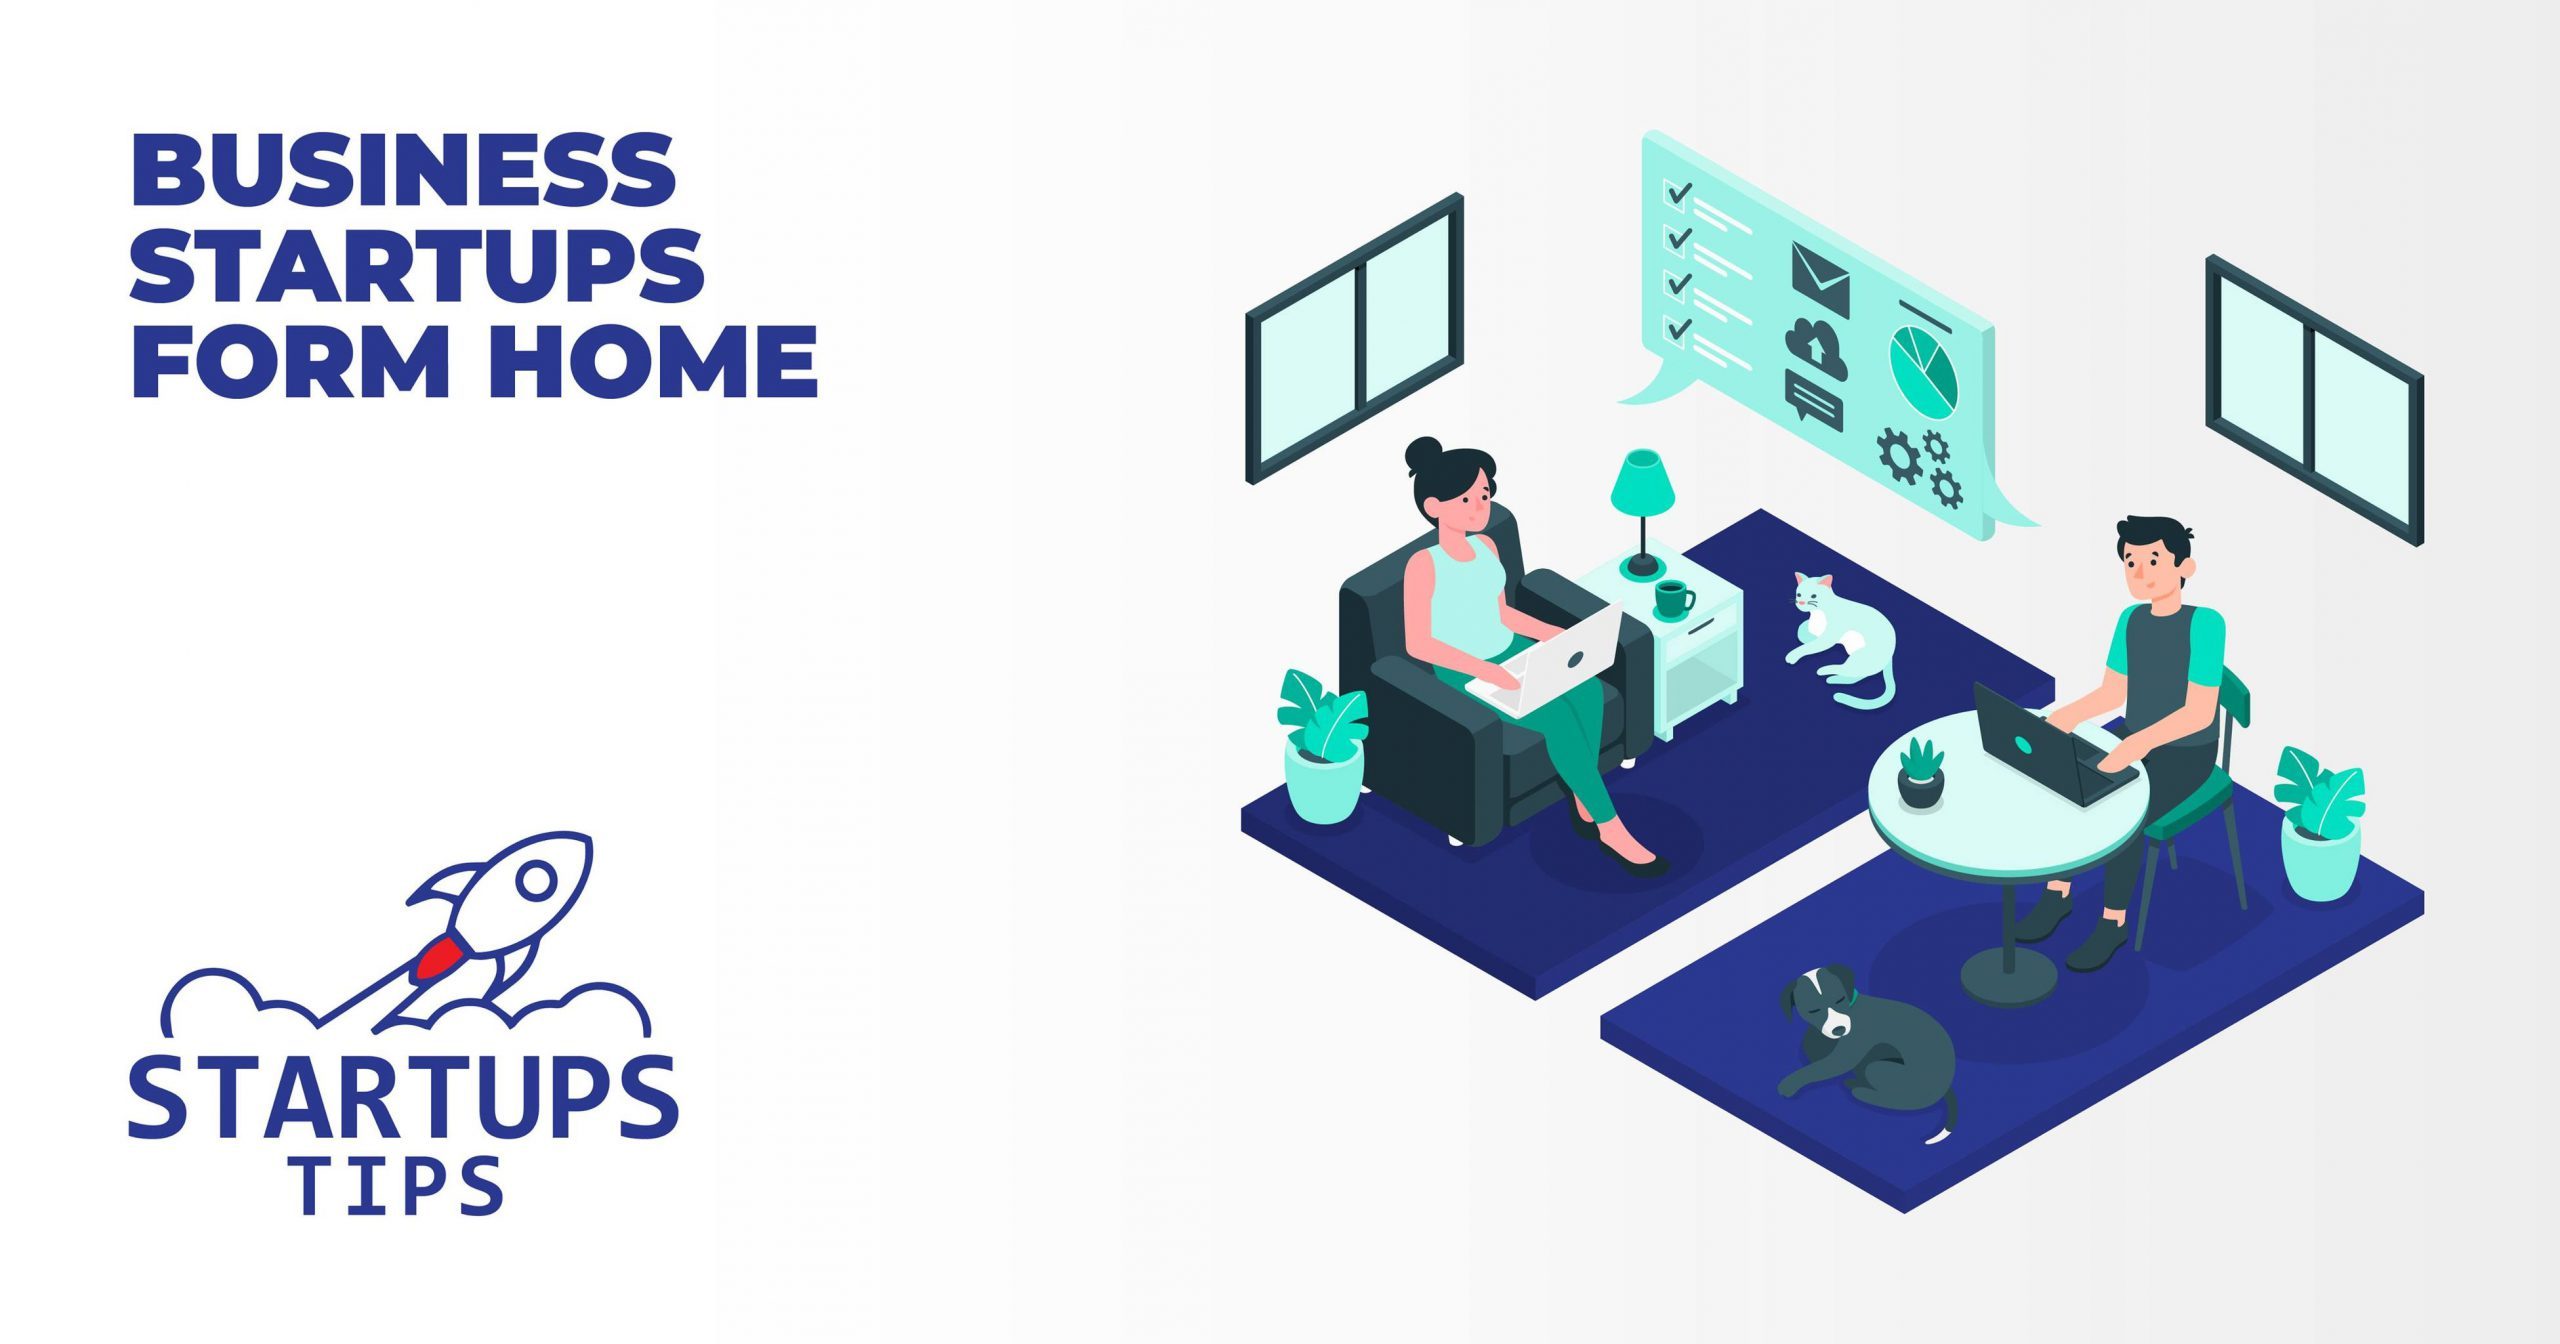 Discover 10+ Best Business Startups From Home